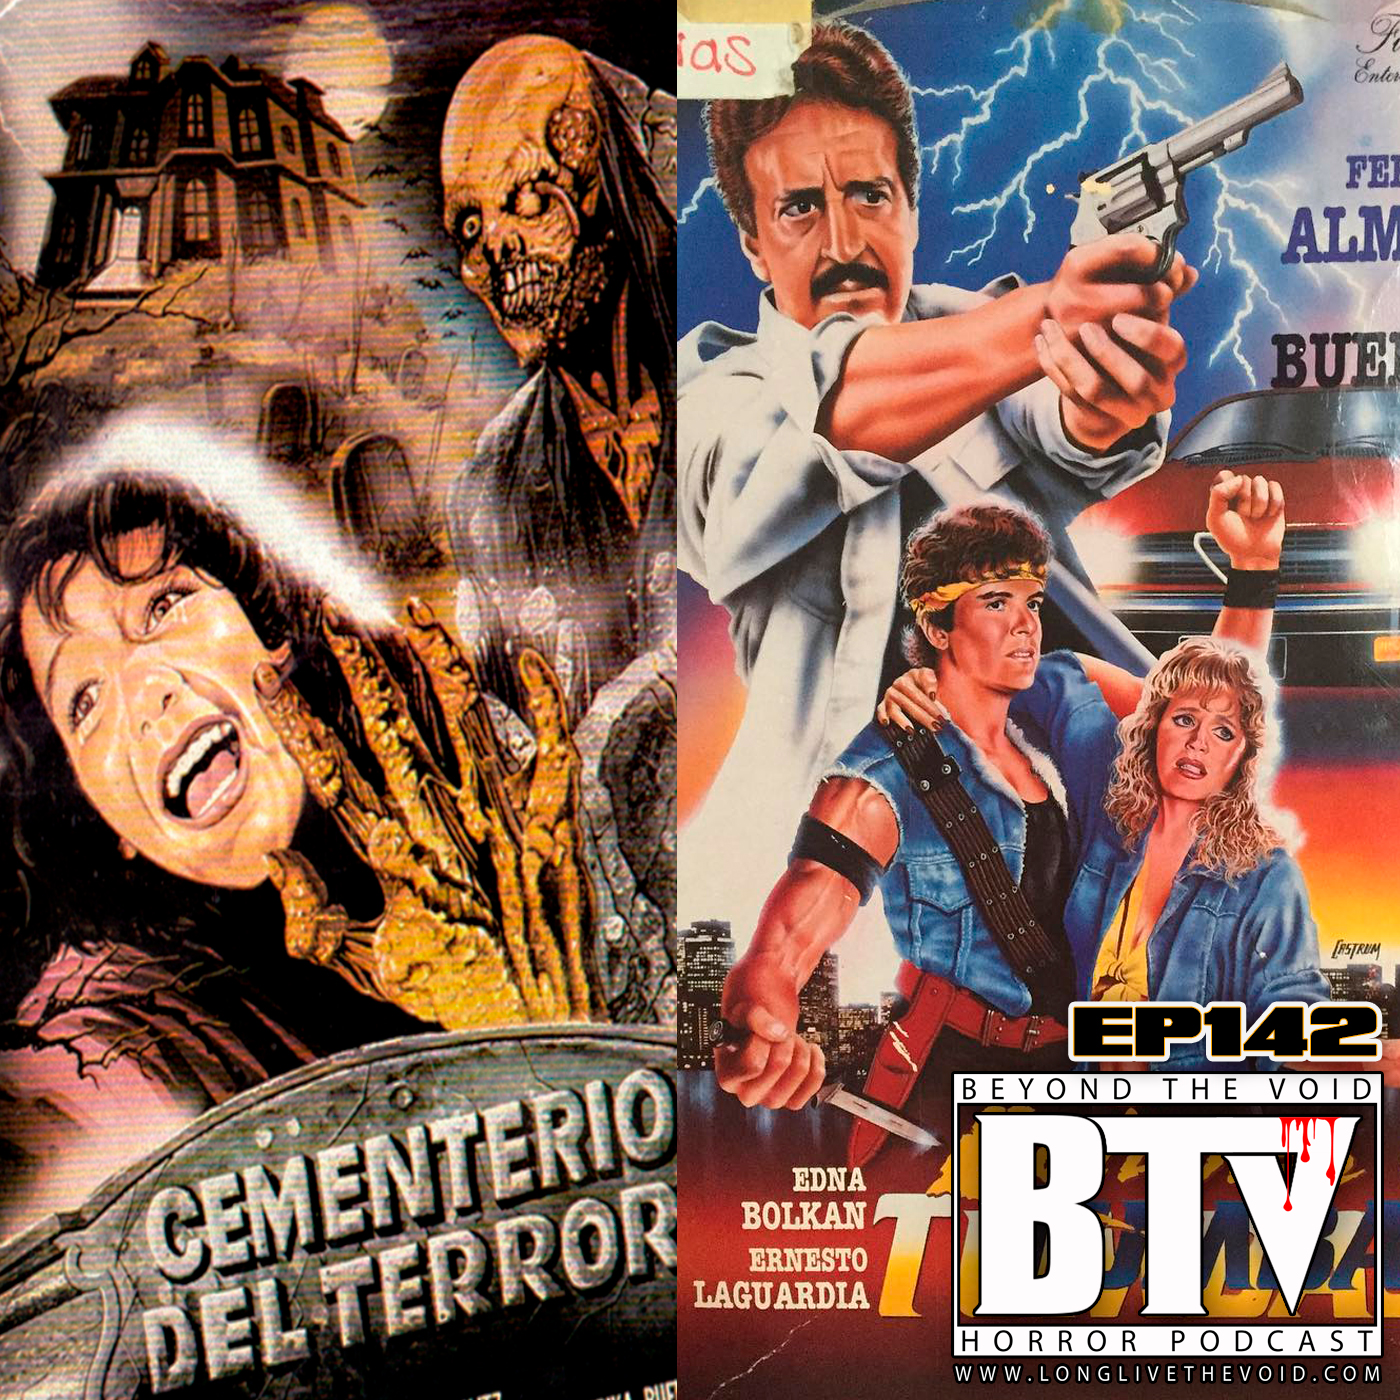 Ep142 Mexican Slashers w/ Terrible Terror Podcast